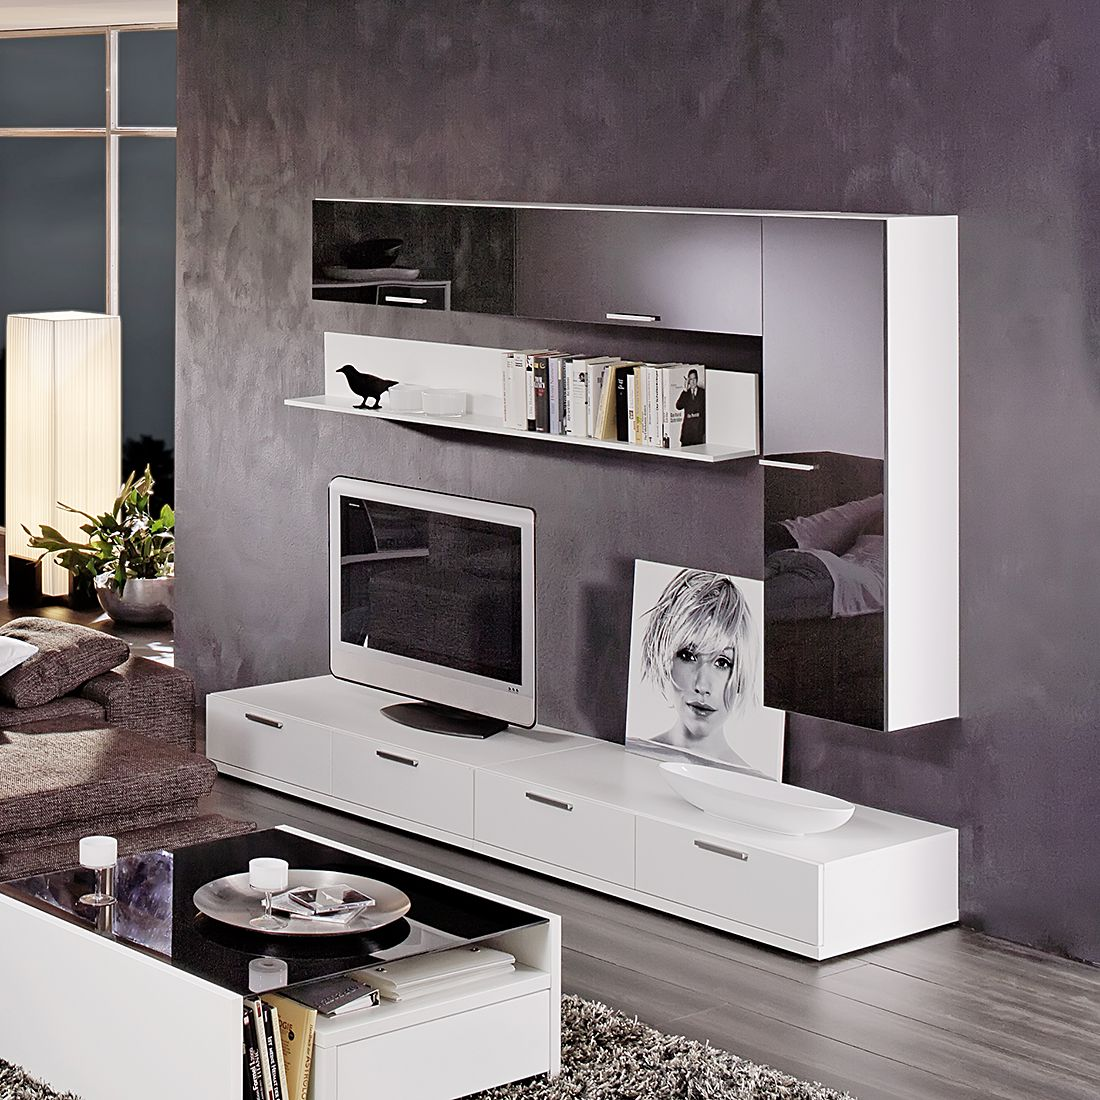 game wohnwand 6 teilig mit absetzung schwarzglas wei. Black Bedroom Furniture Sets. Home Design Ideas